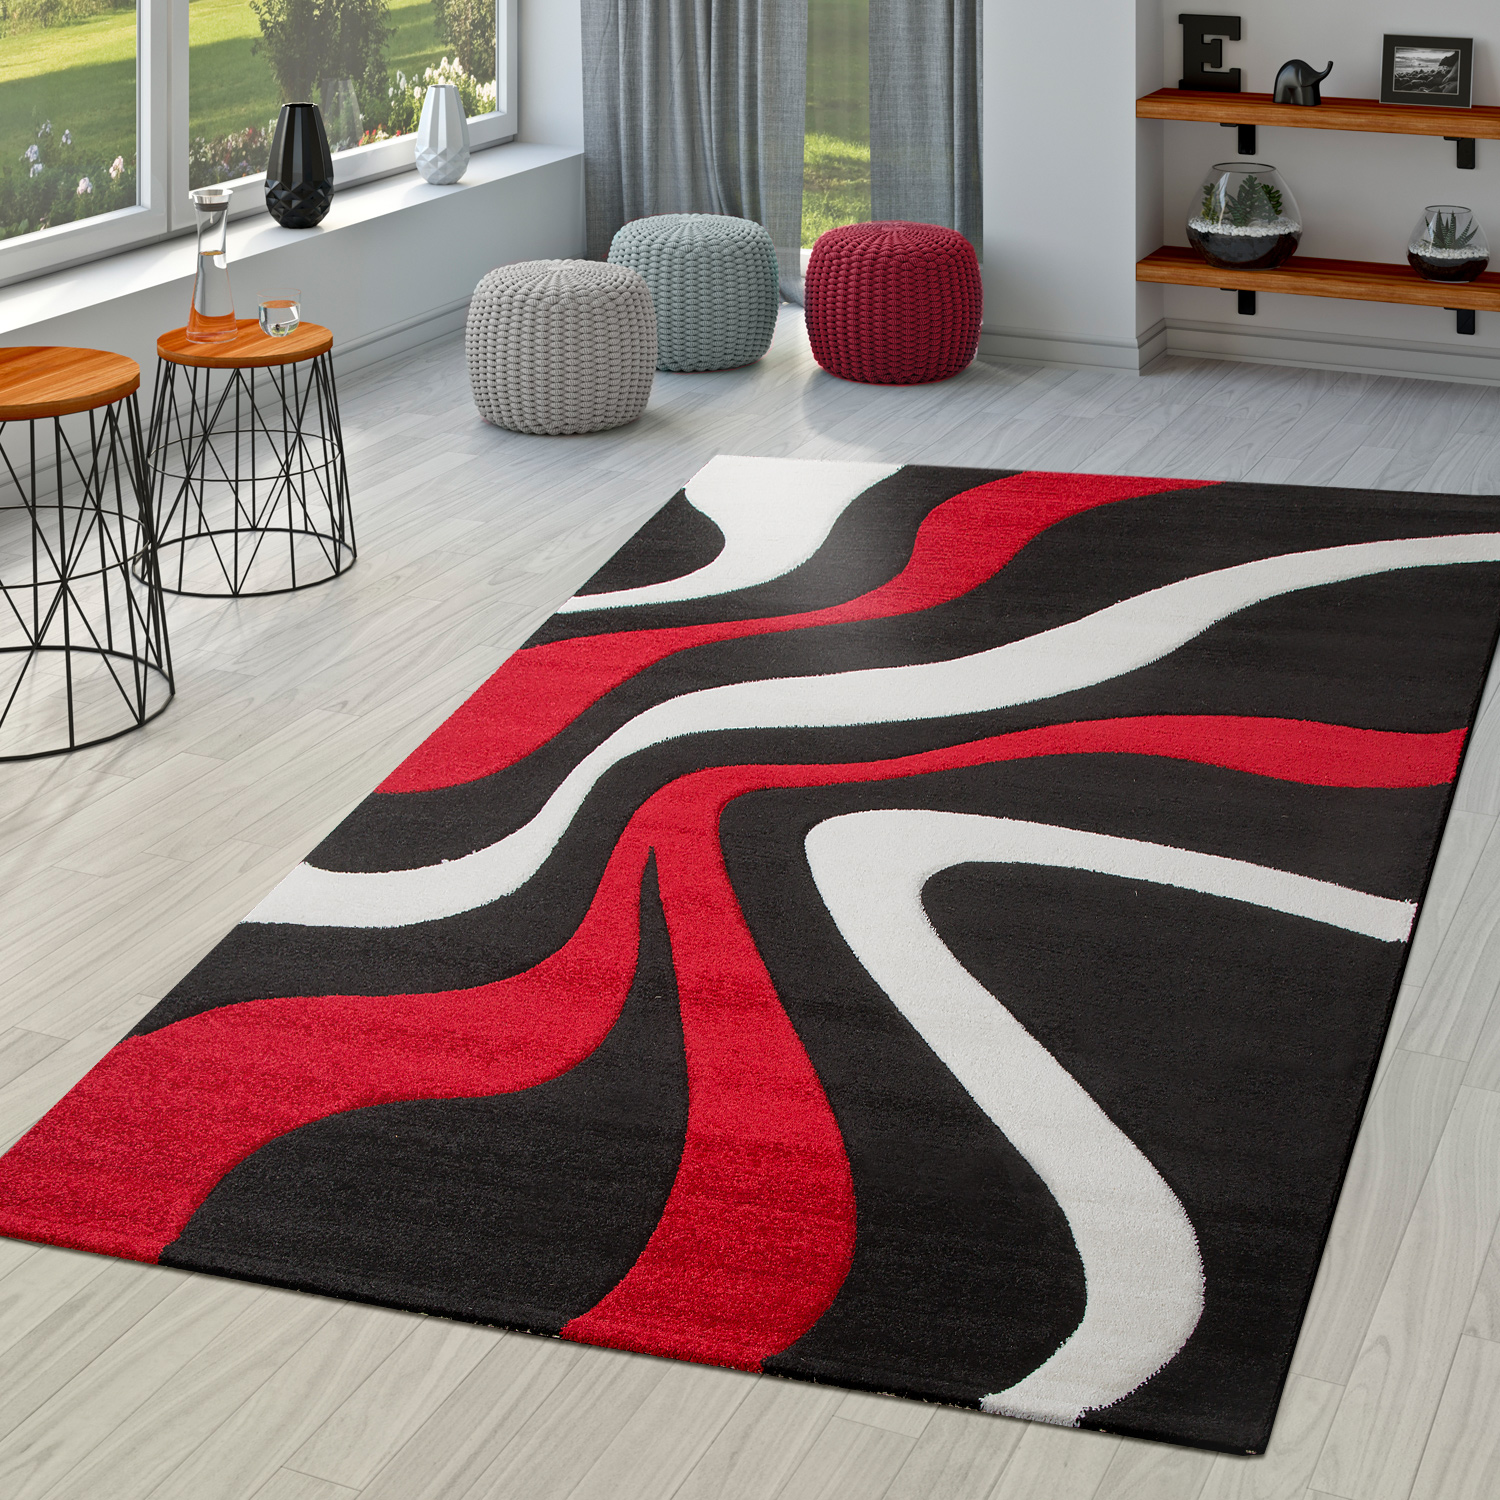 Rug Red Black White Living Room Rugs Modern With Contour Cut Ebay